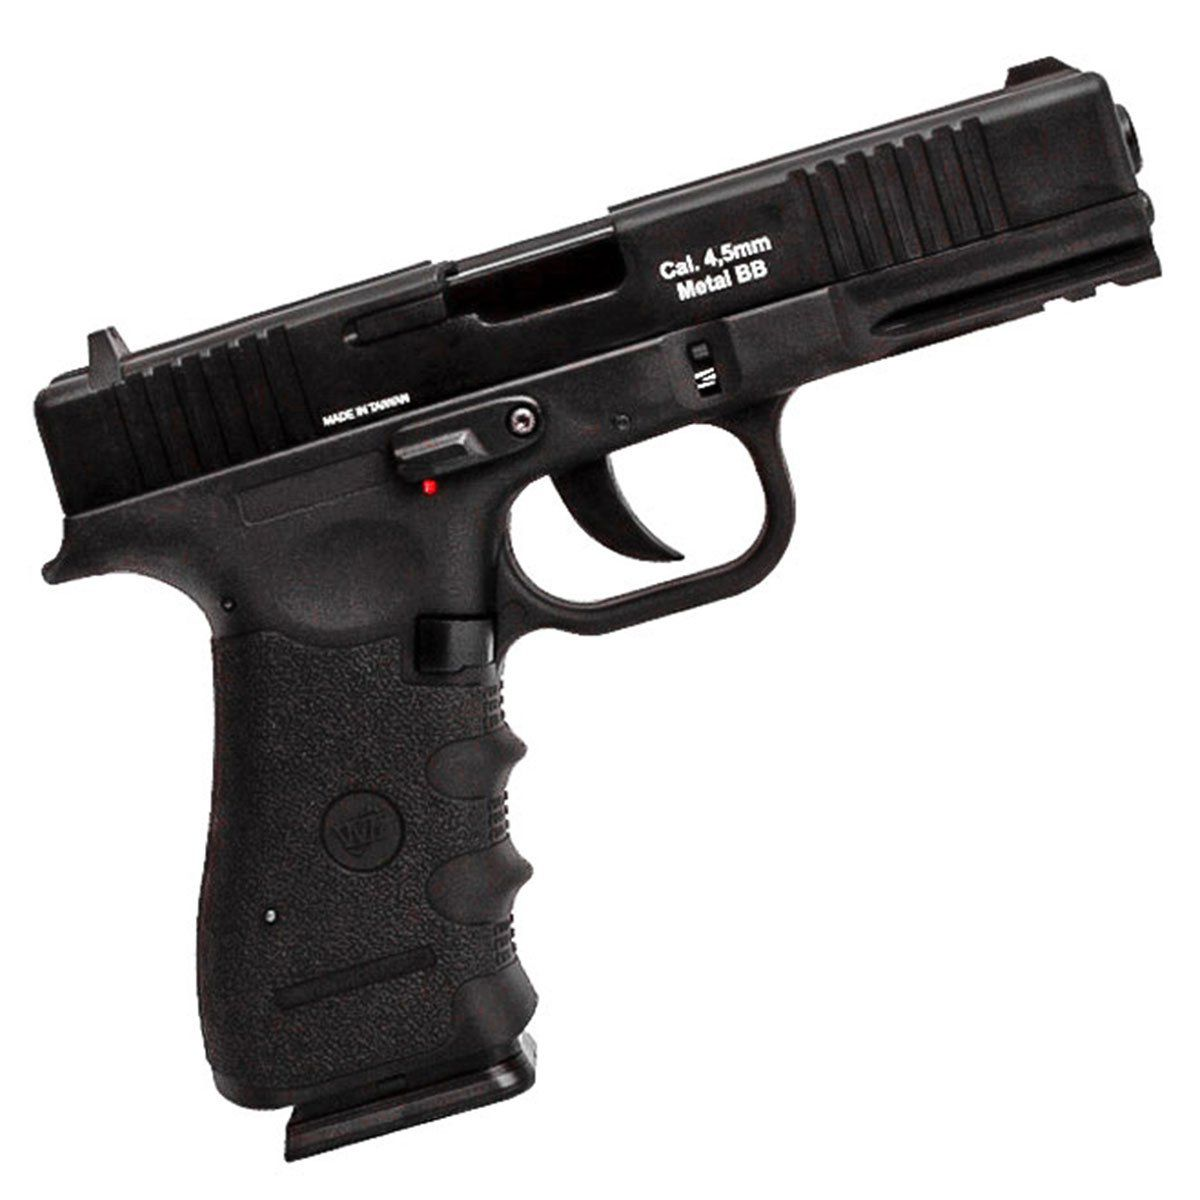 Pistola de Pressão Wingun W119 Slide Metal CO2 4,5mm